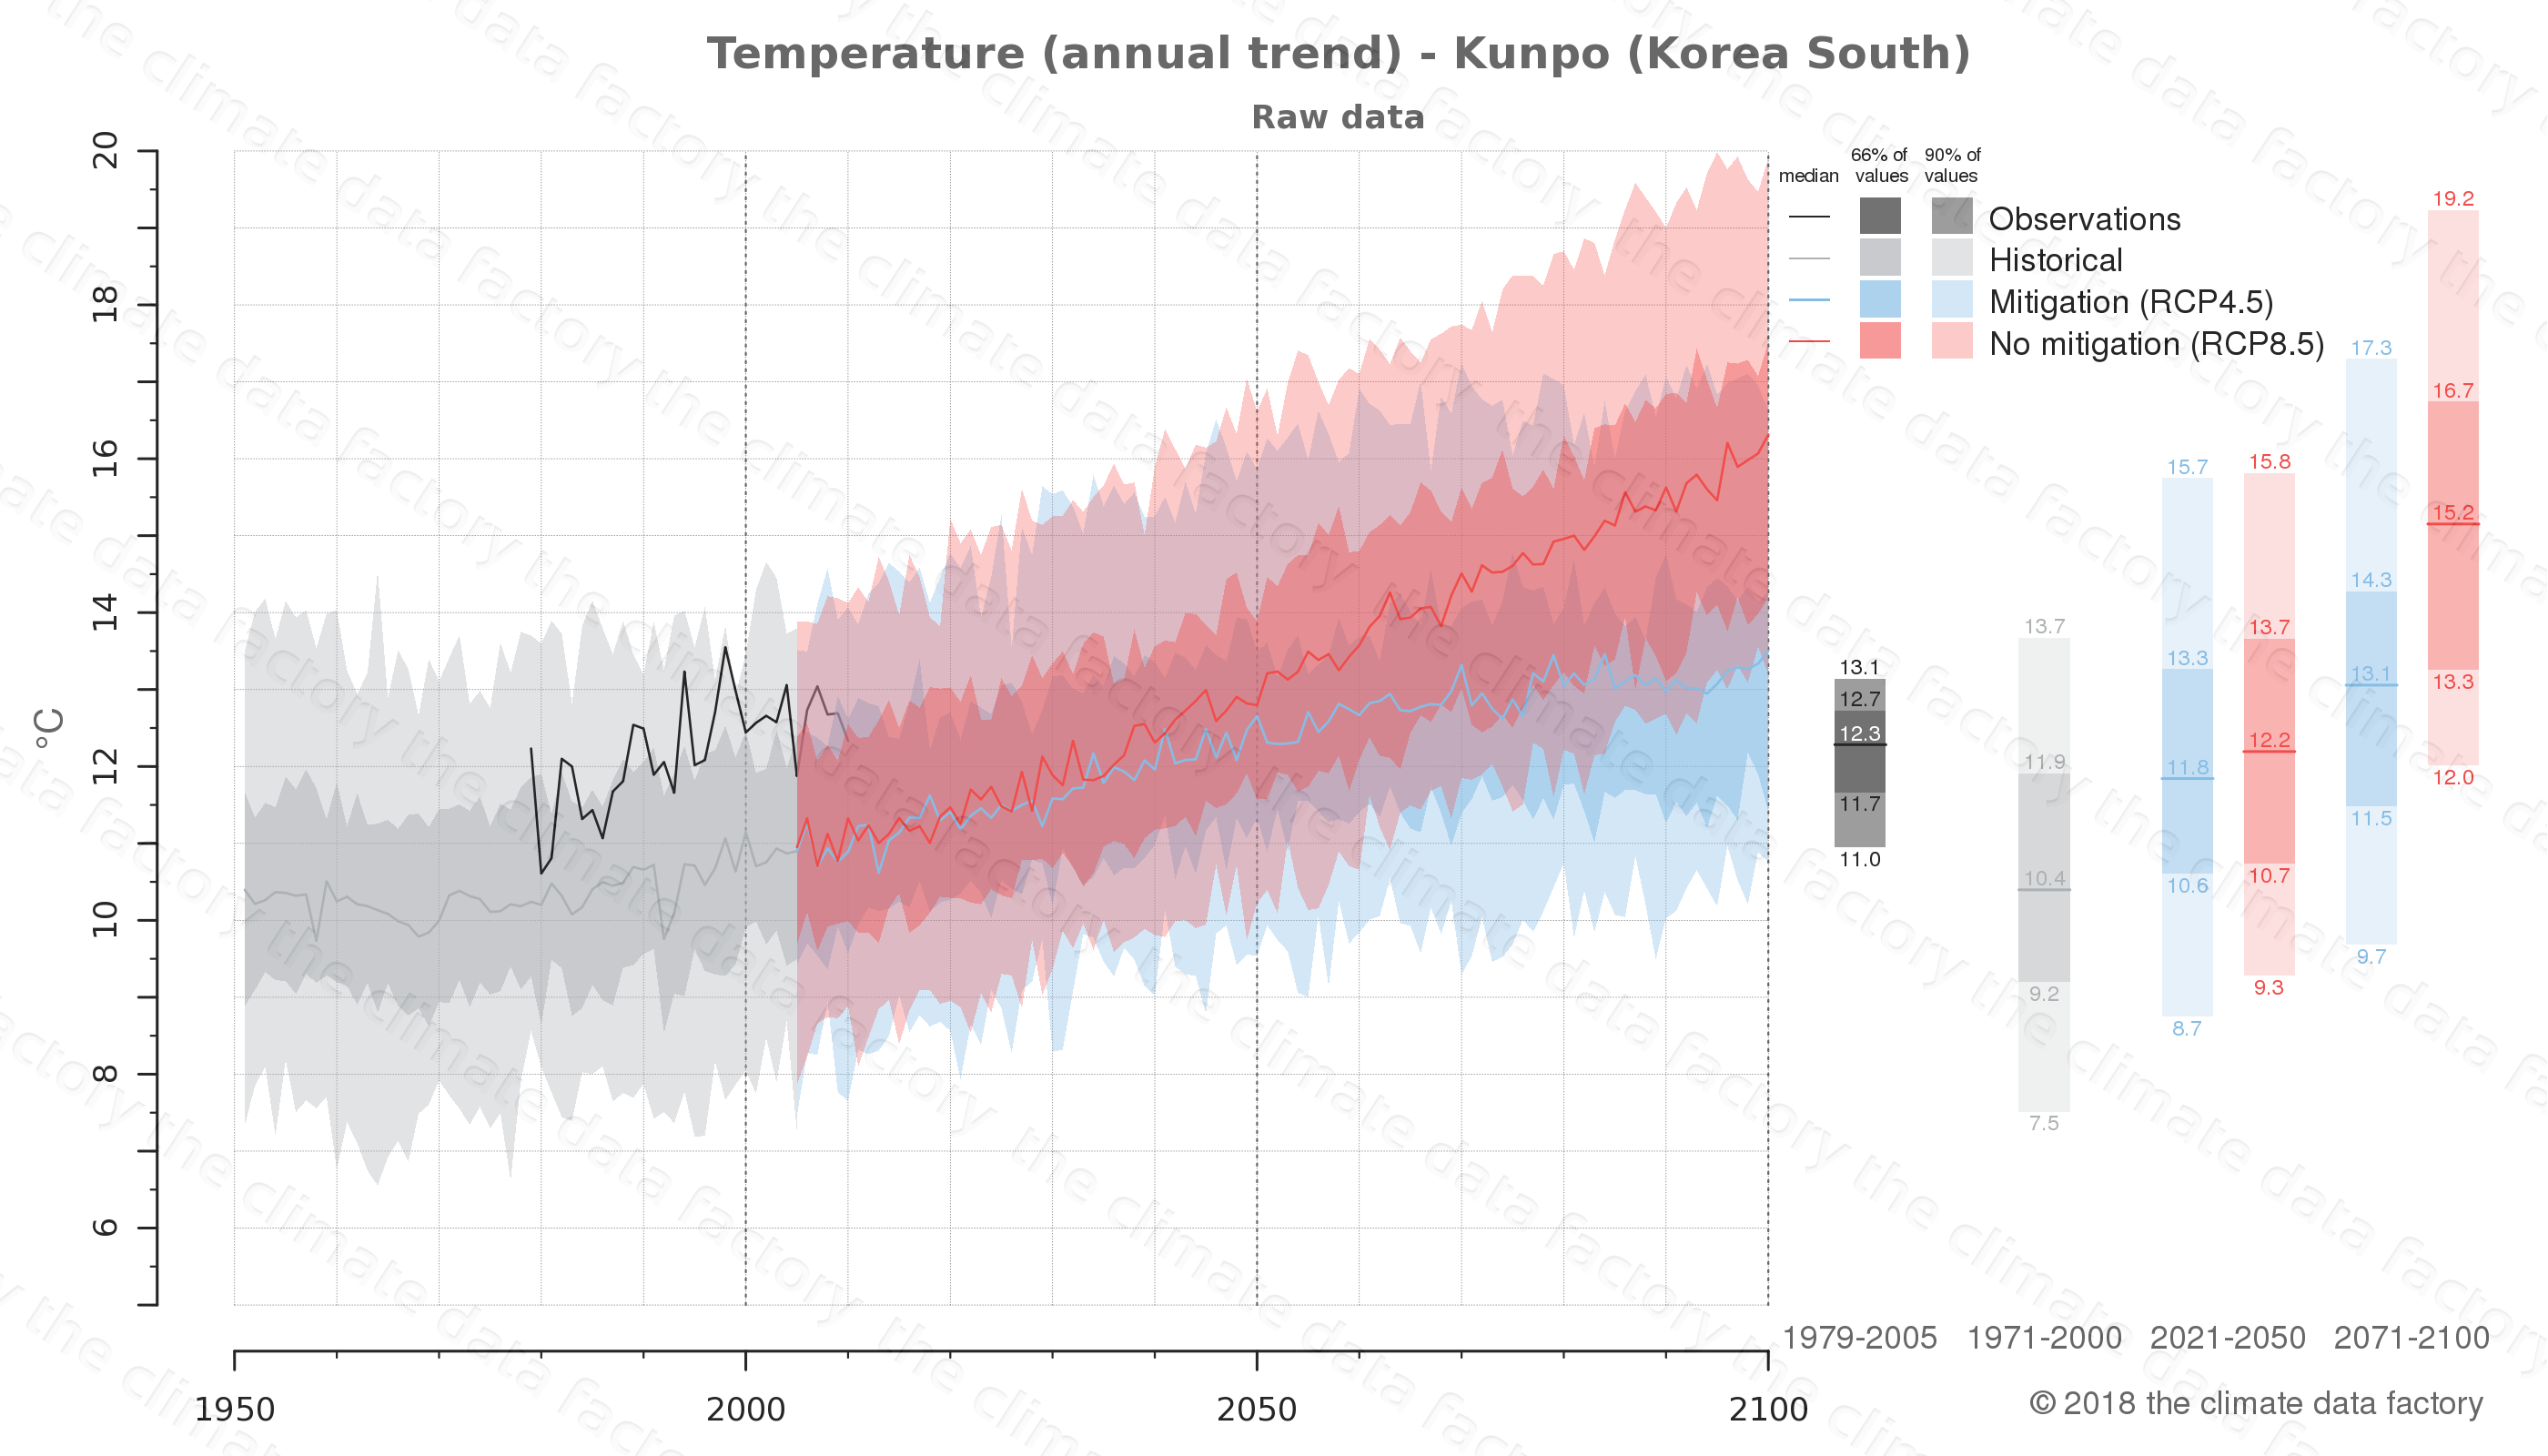 climate change data policy adaptation climate graph city data temperature kunpo south korea